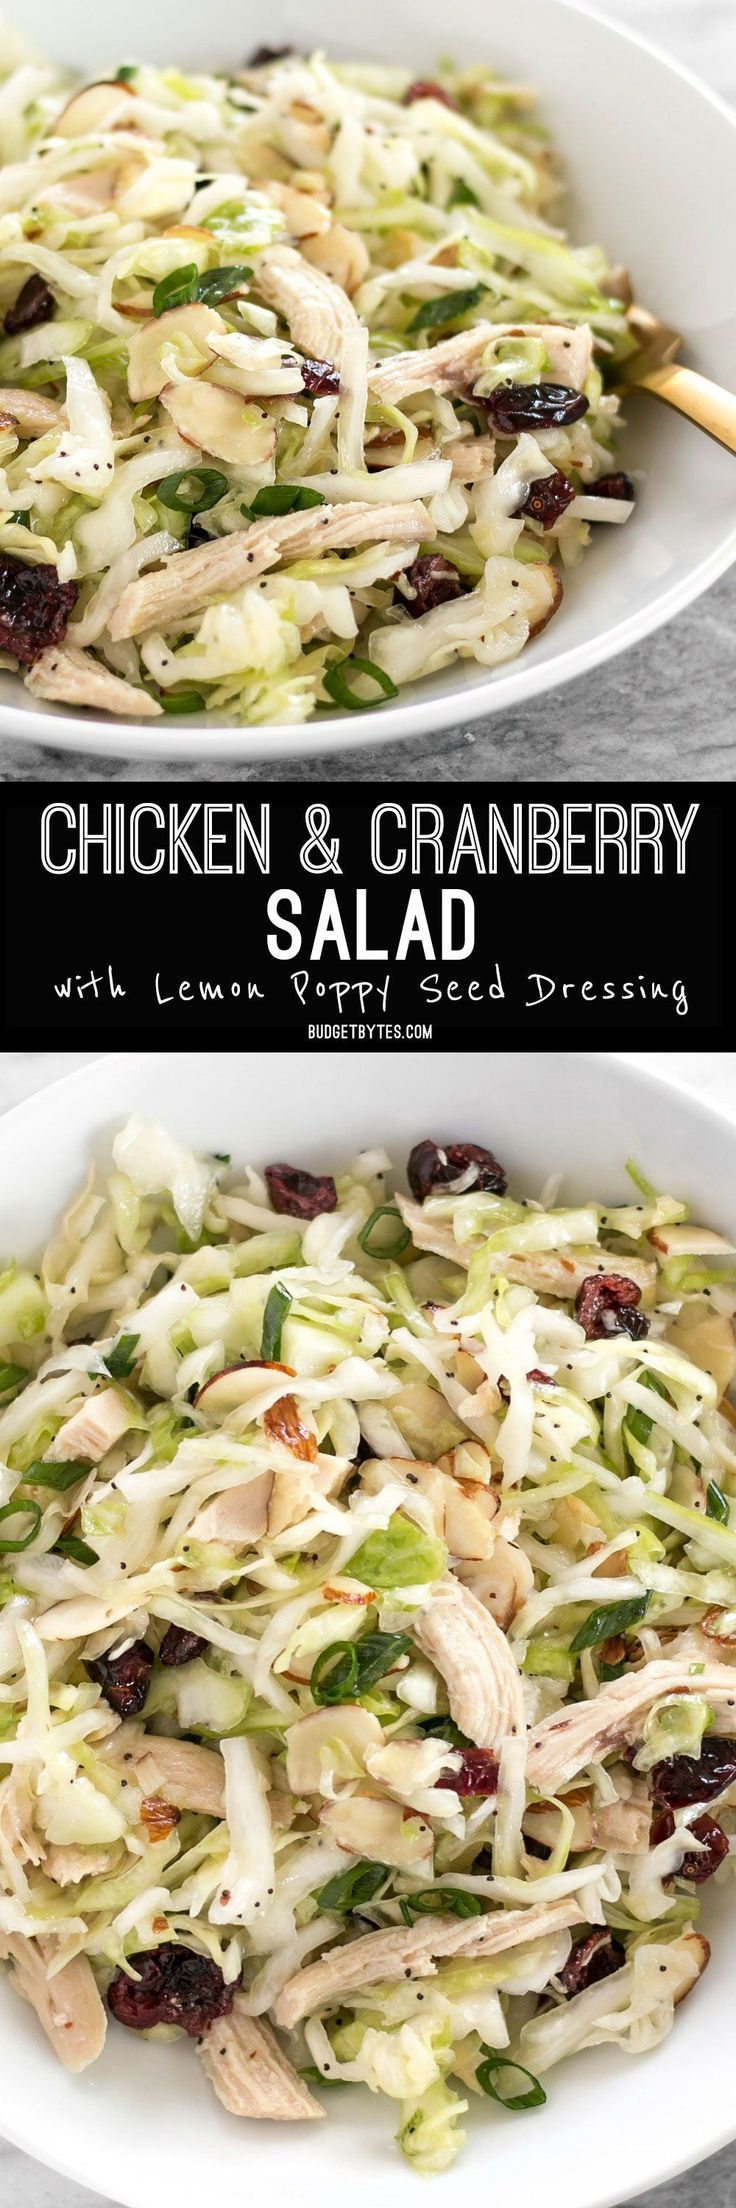 This Chicken and Cranberry Salad combines tender cabbage, nutty almonds, sweet cranberries and a tart lemon poppy seed dressing, plus enough chicken to make it a meal.